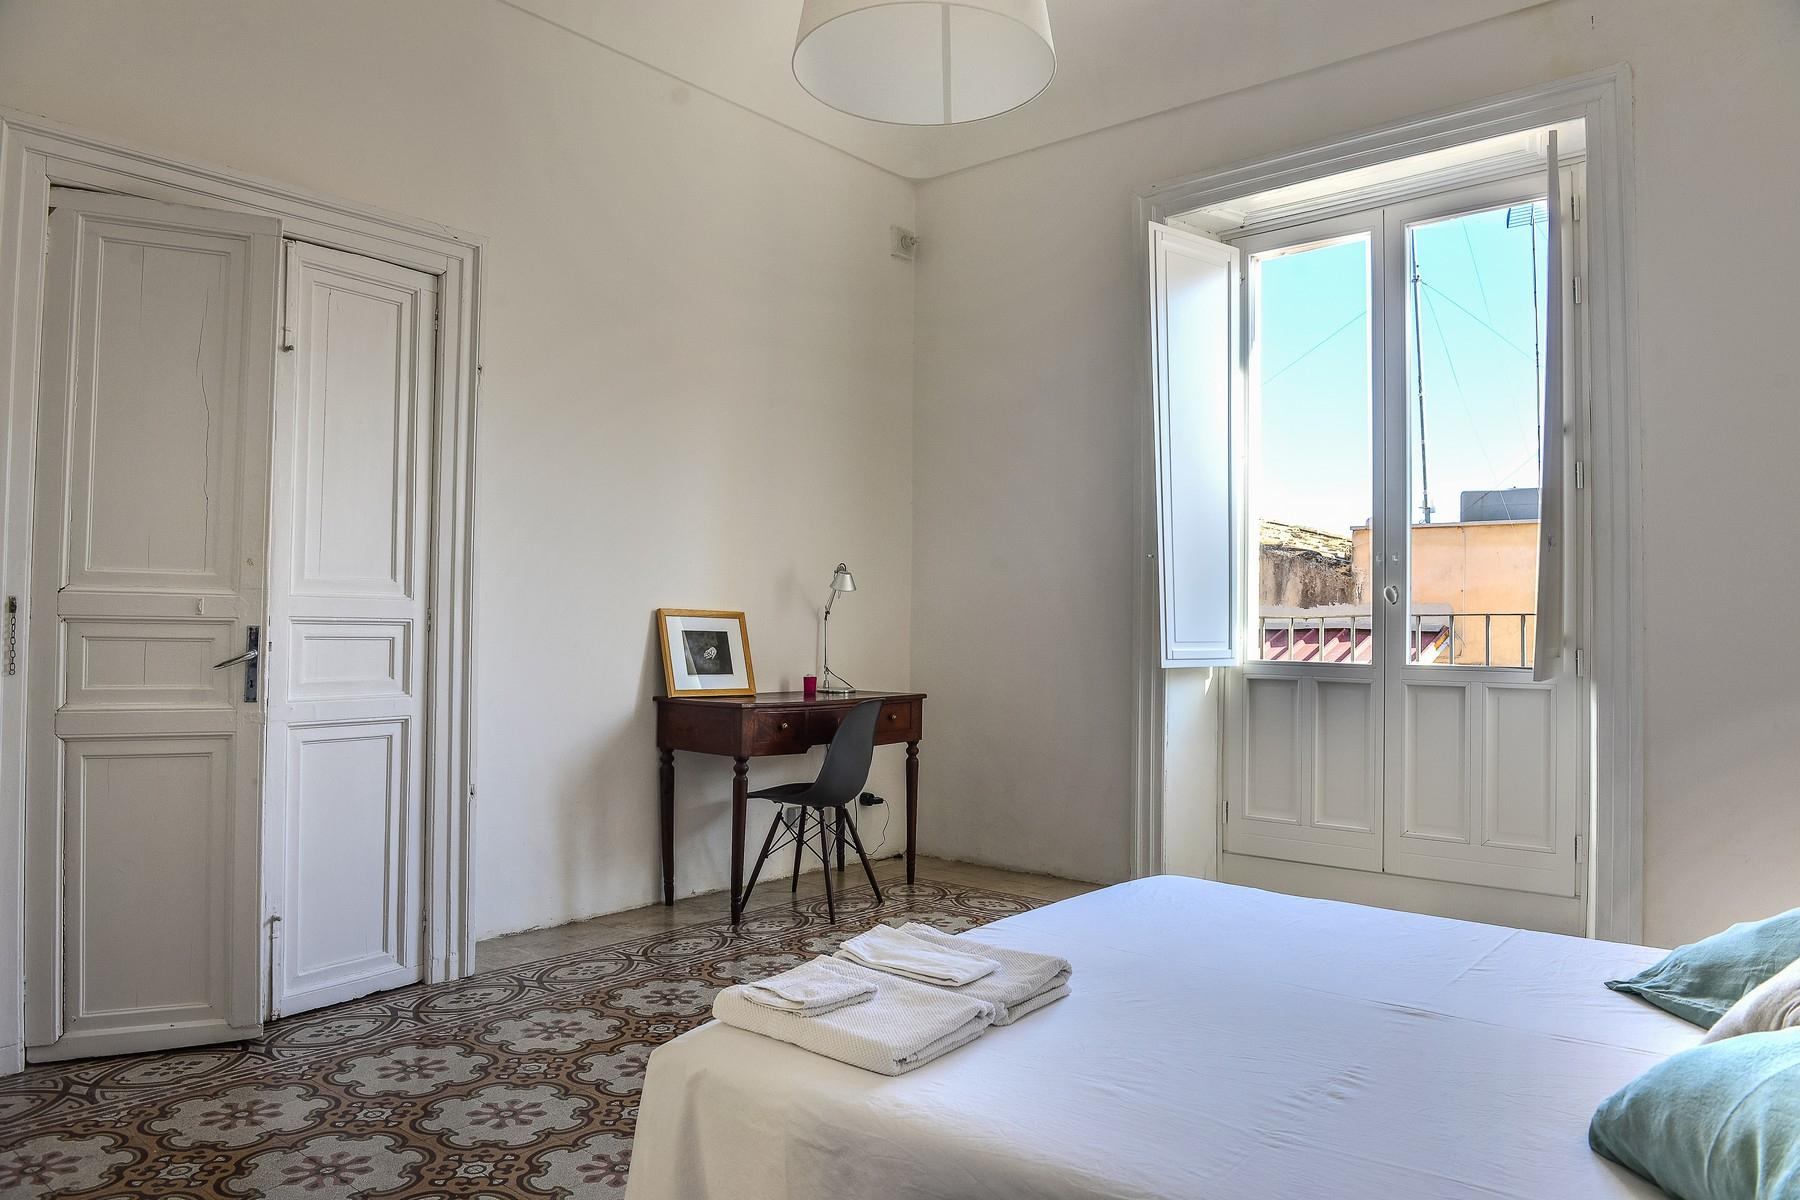 Renovated apartments with the original floors in Noto - 23